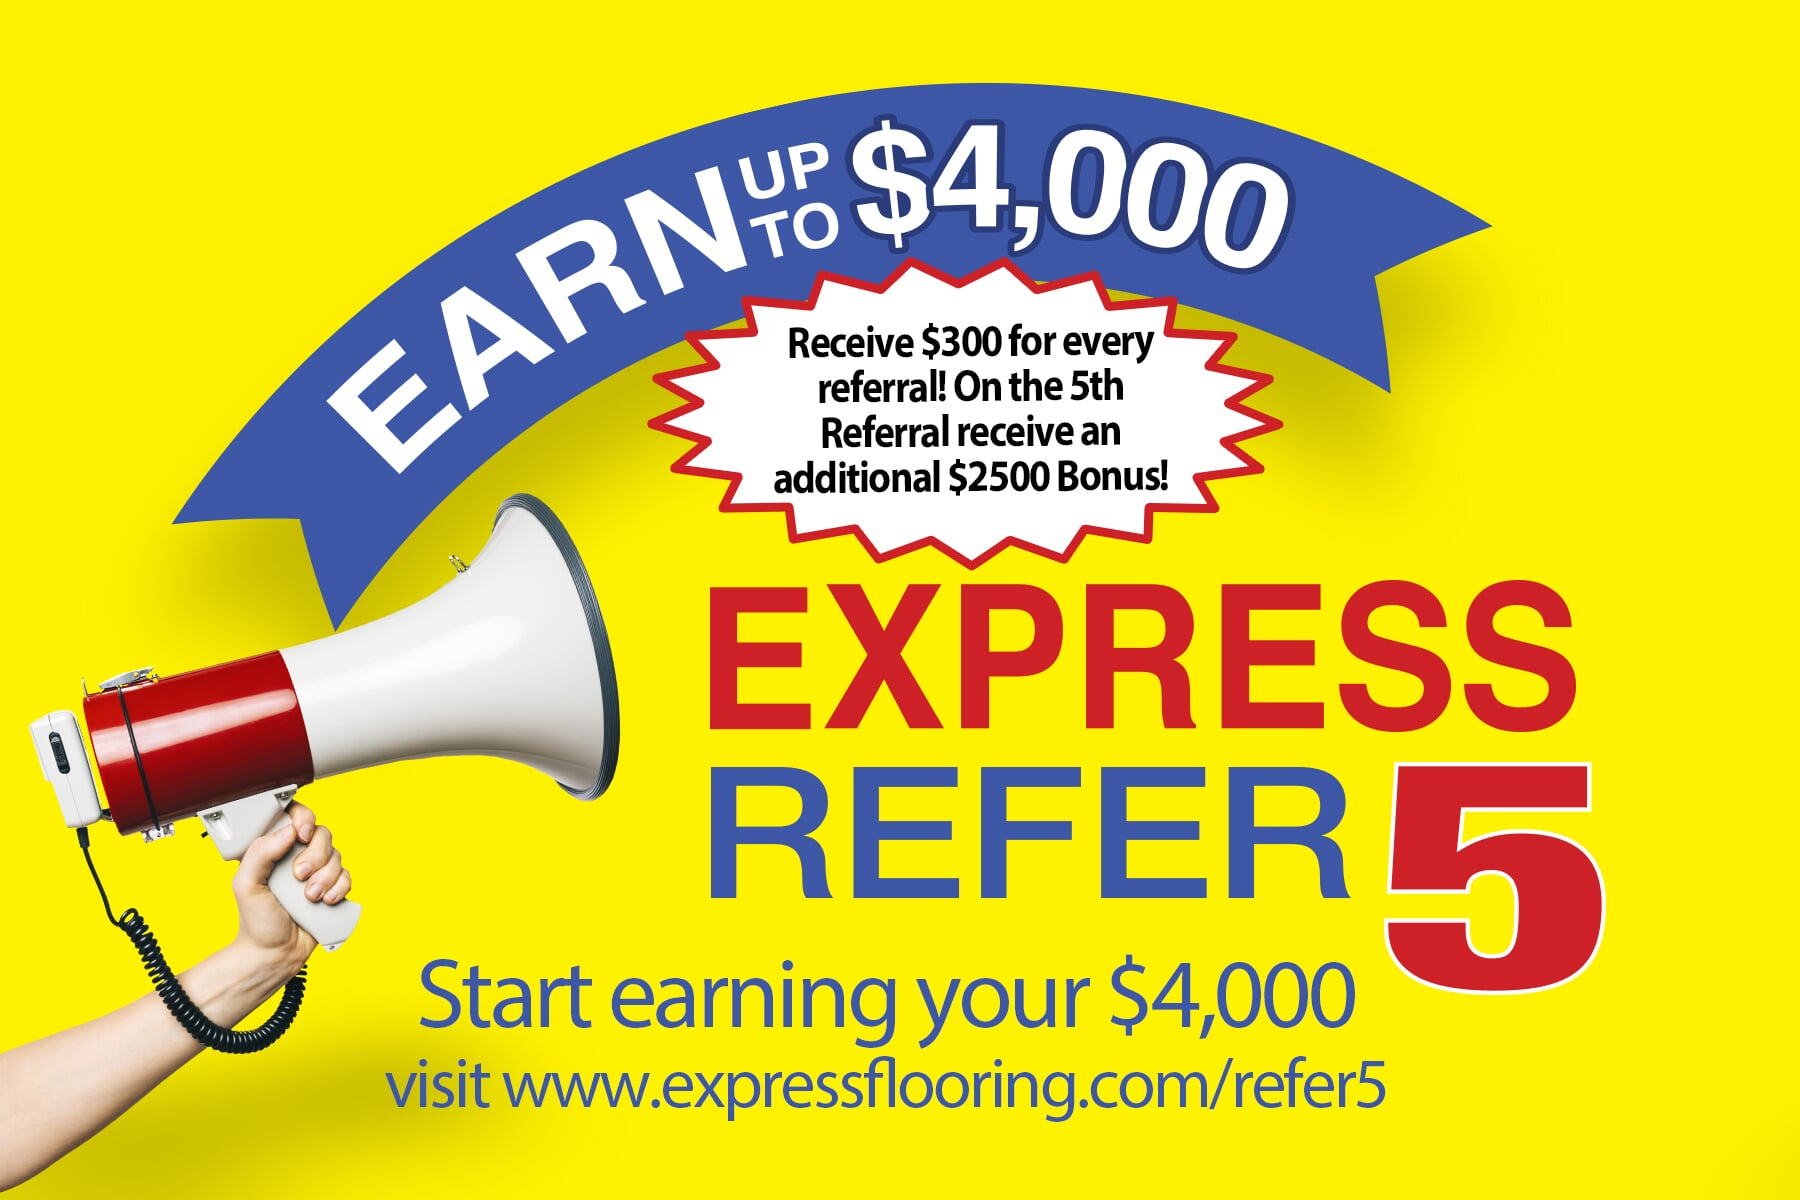 Express Refer 5, Earn up to $4,000